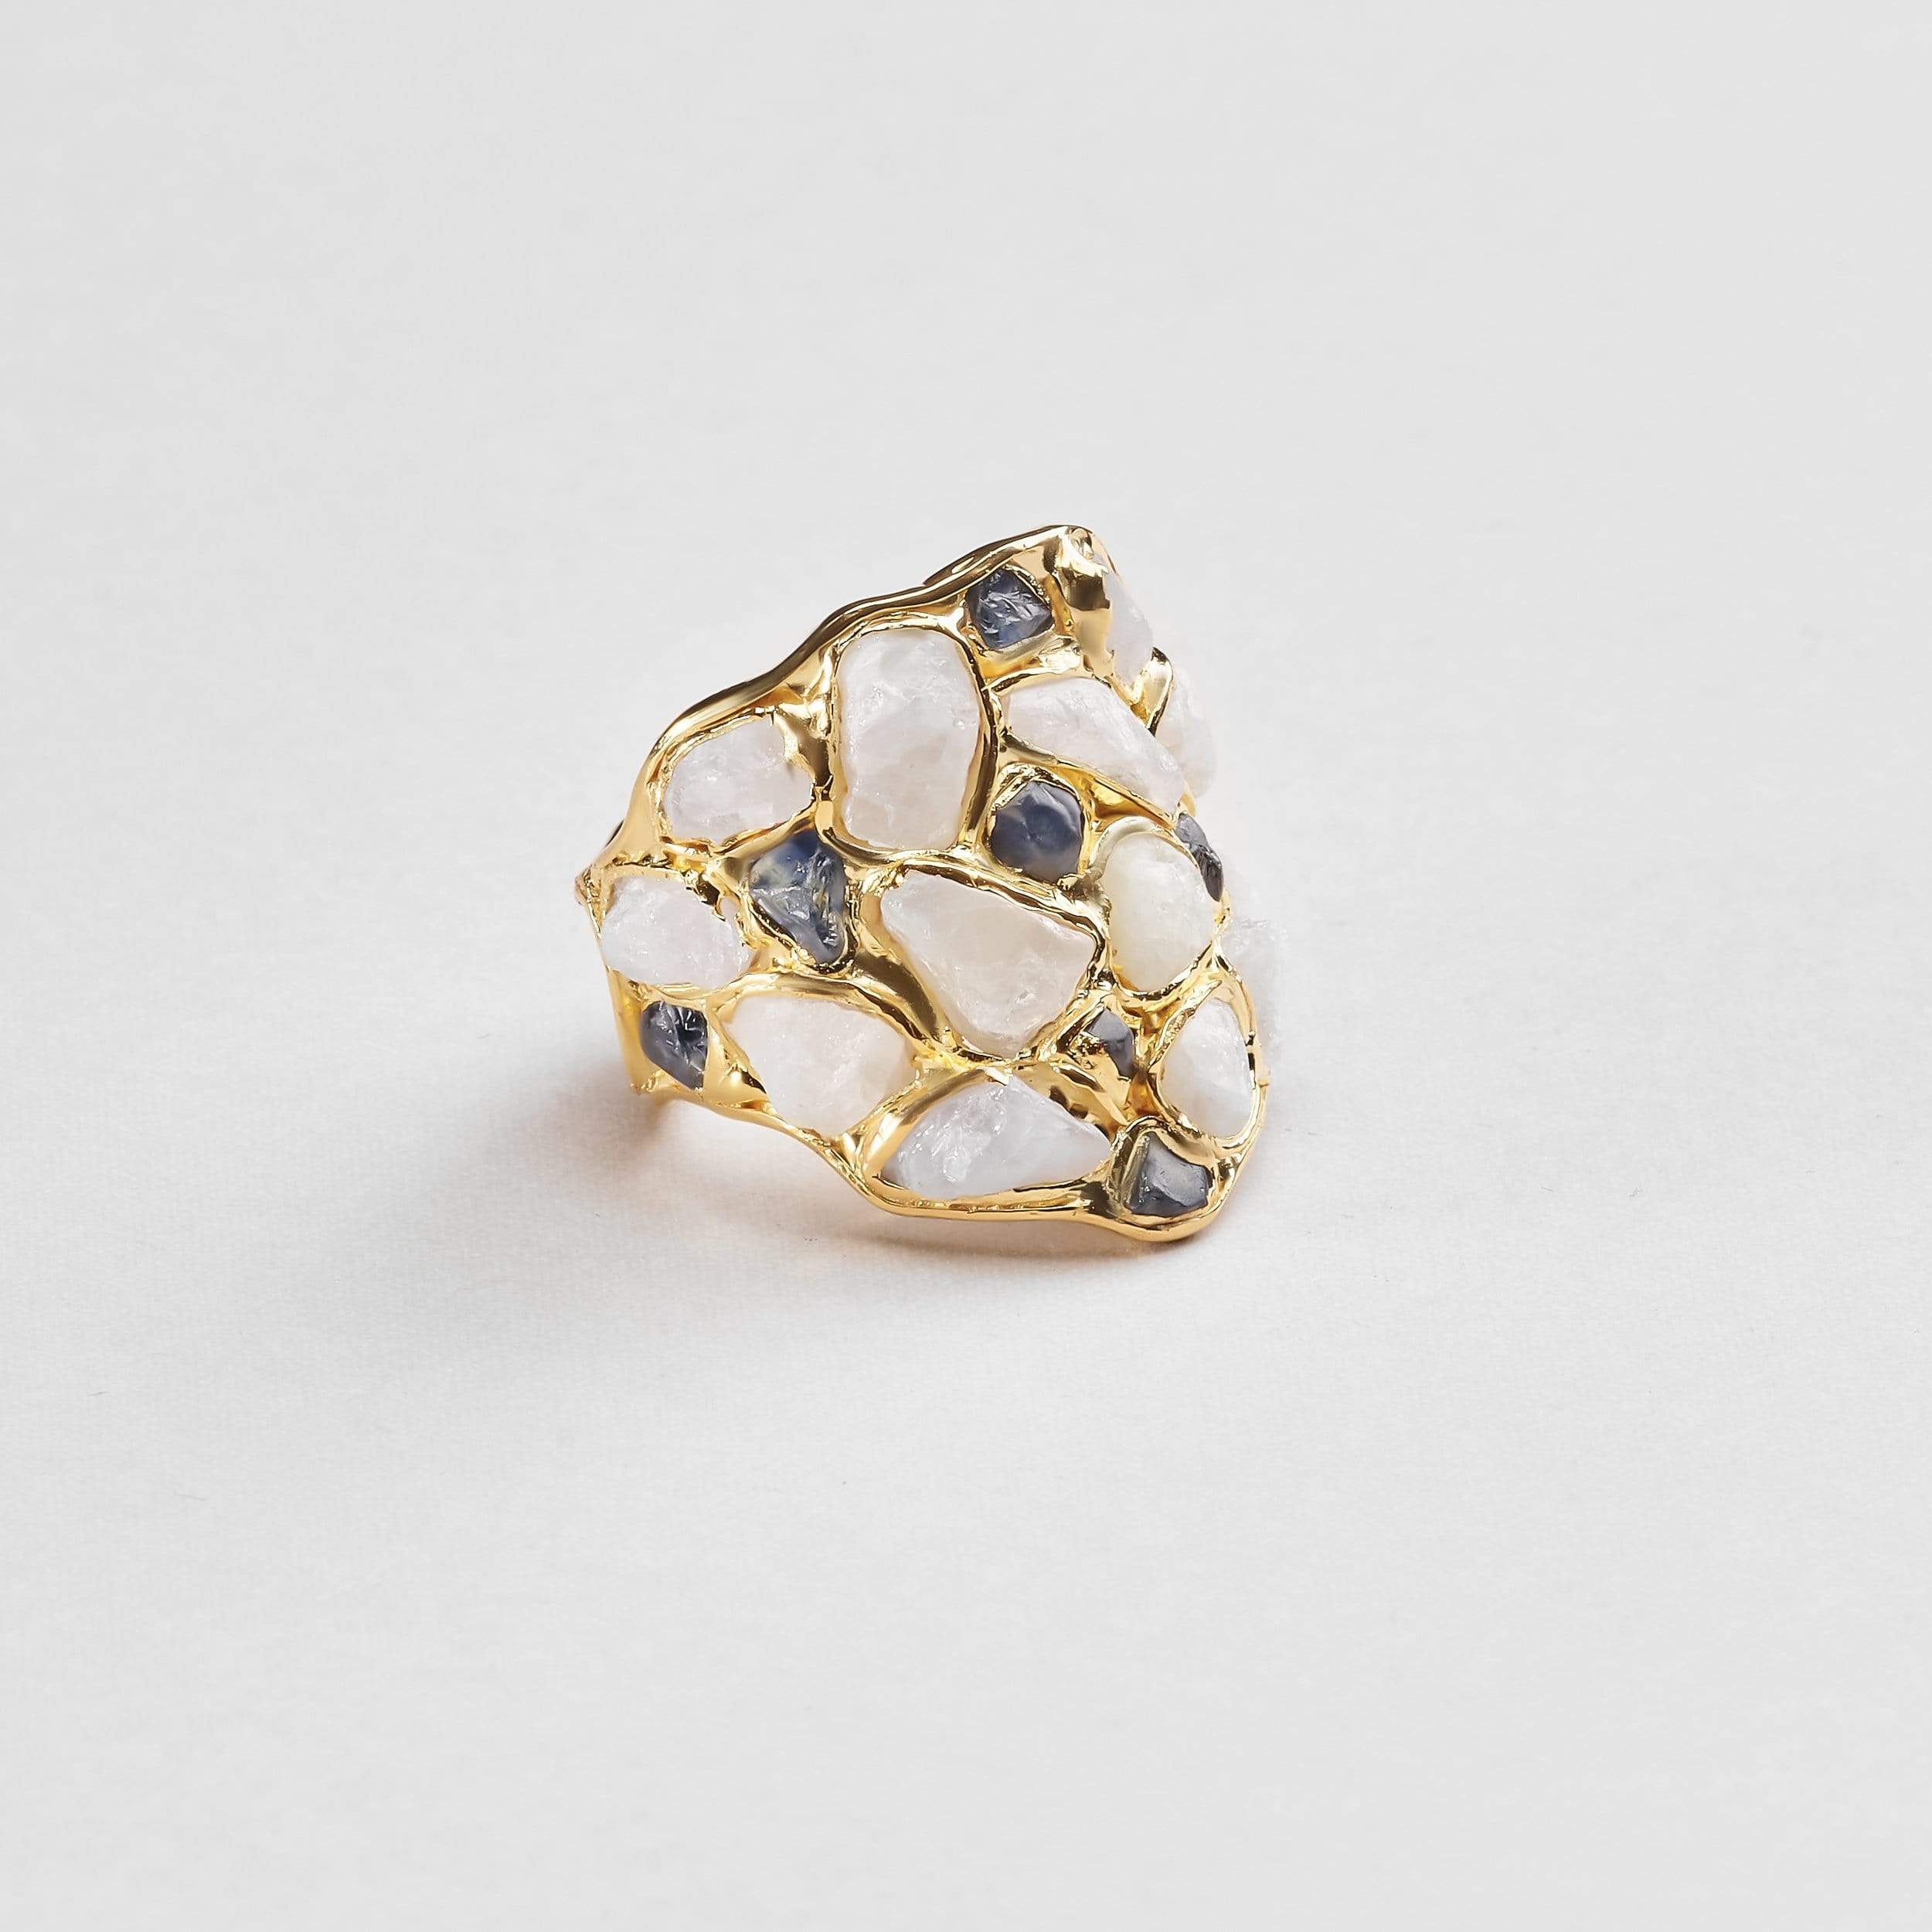 Nerissa White and Blue Sapphire Ring